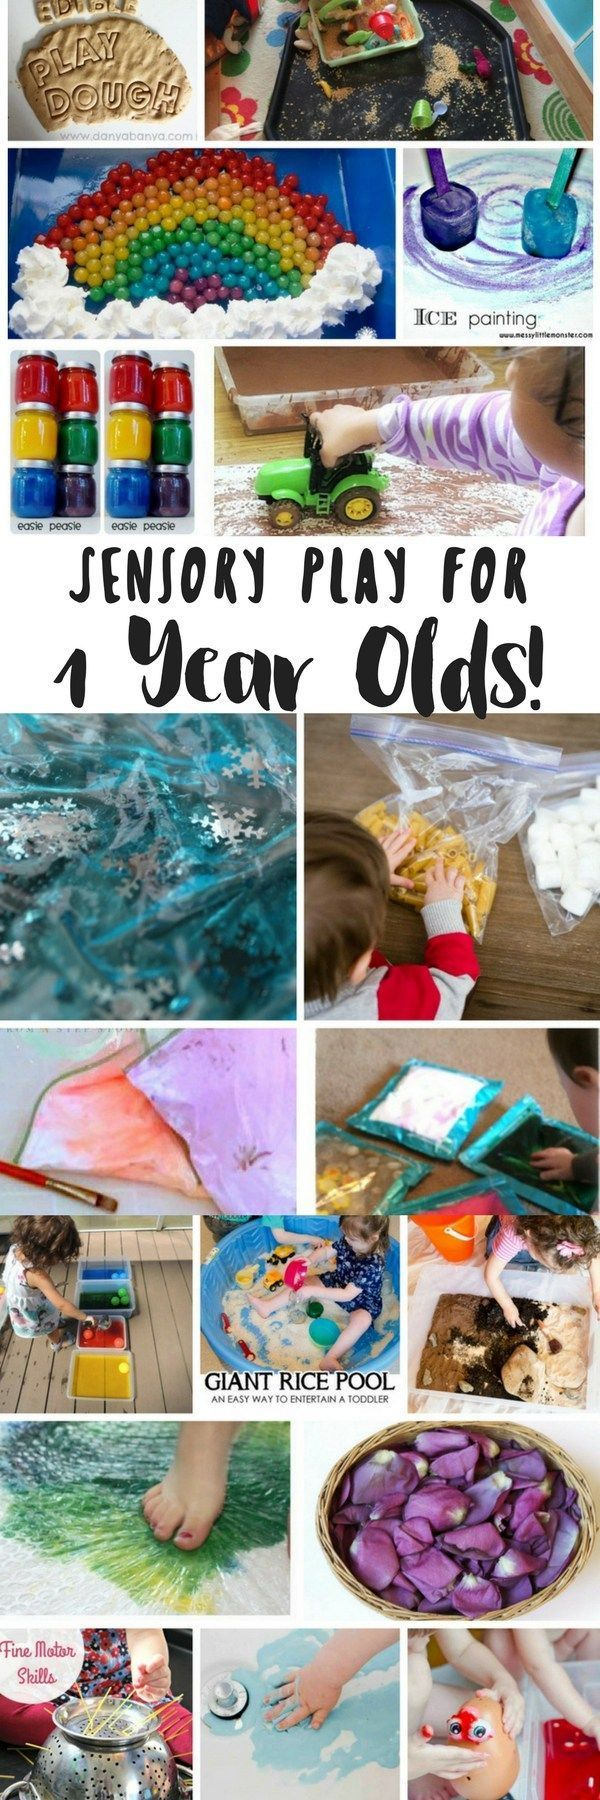 Oh snap bin ideas - Sensory Activities For 1 Year Olds Over 65 Ideas